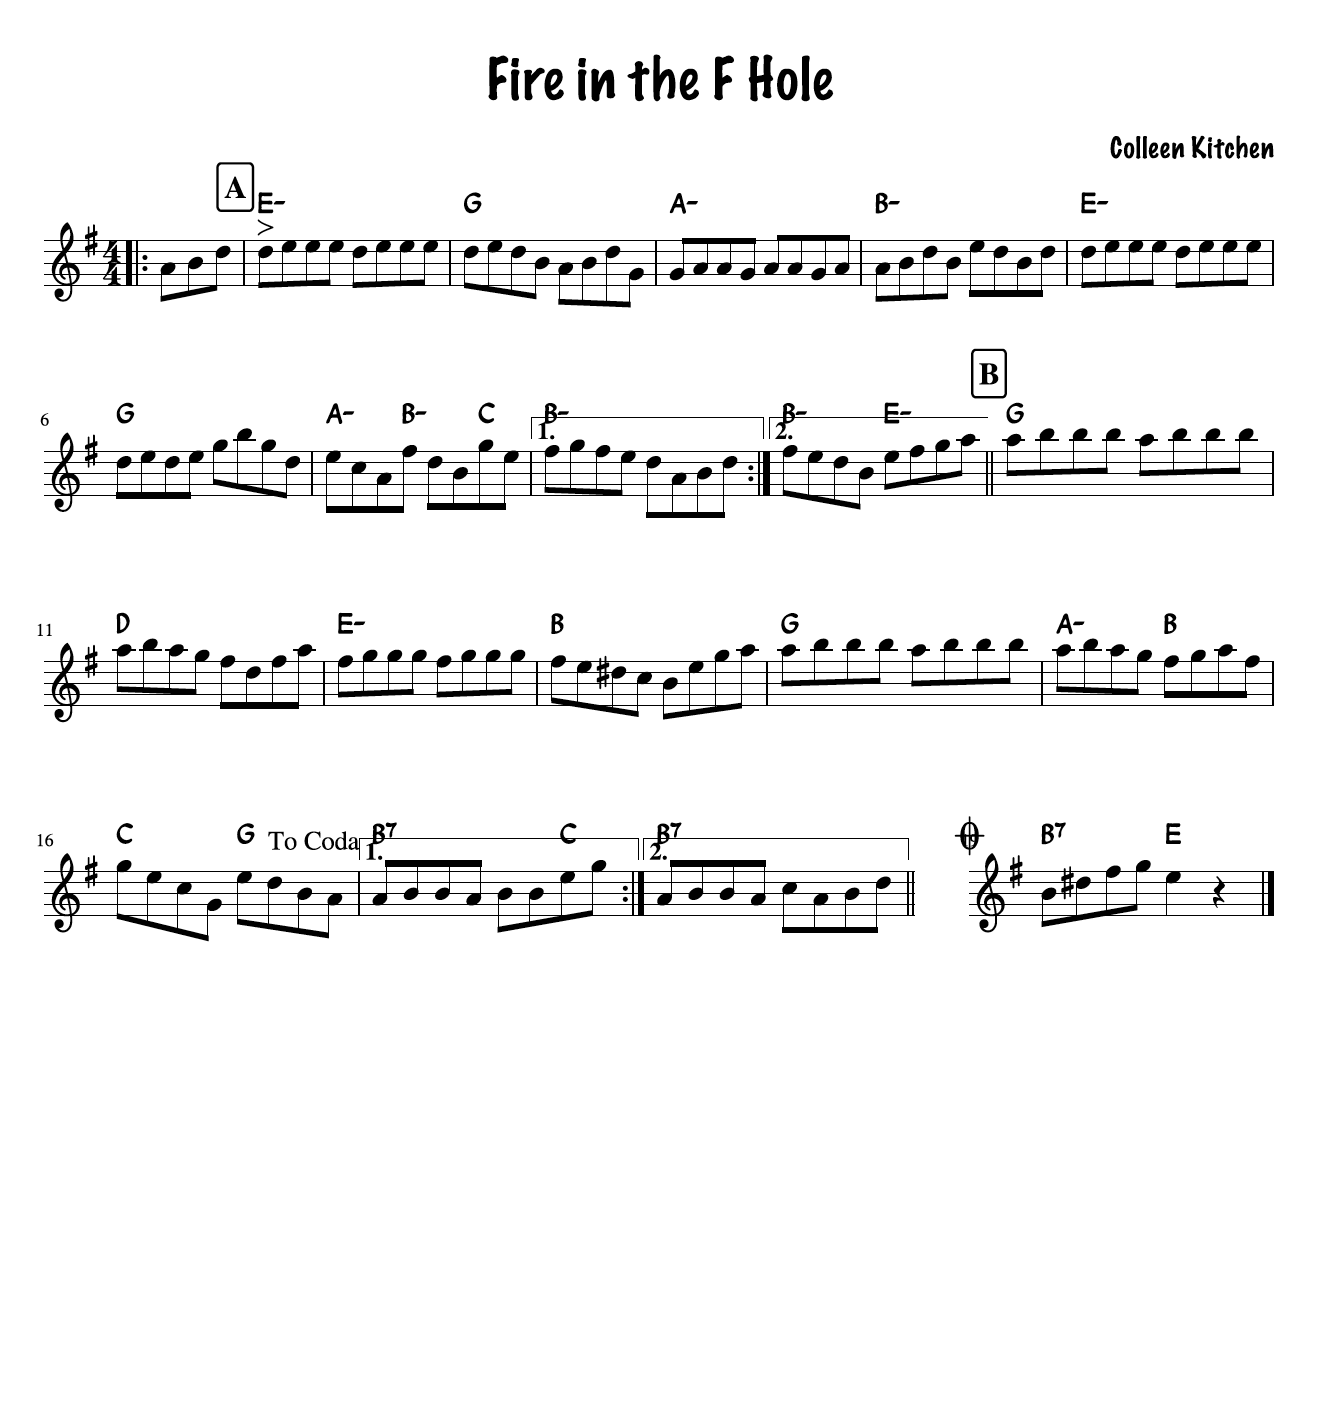 Fire in the fhole original fiddle tune by